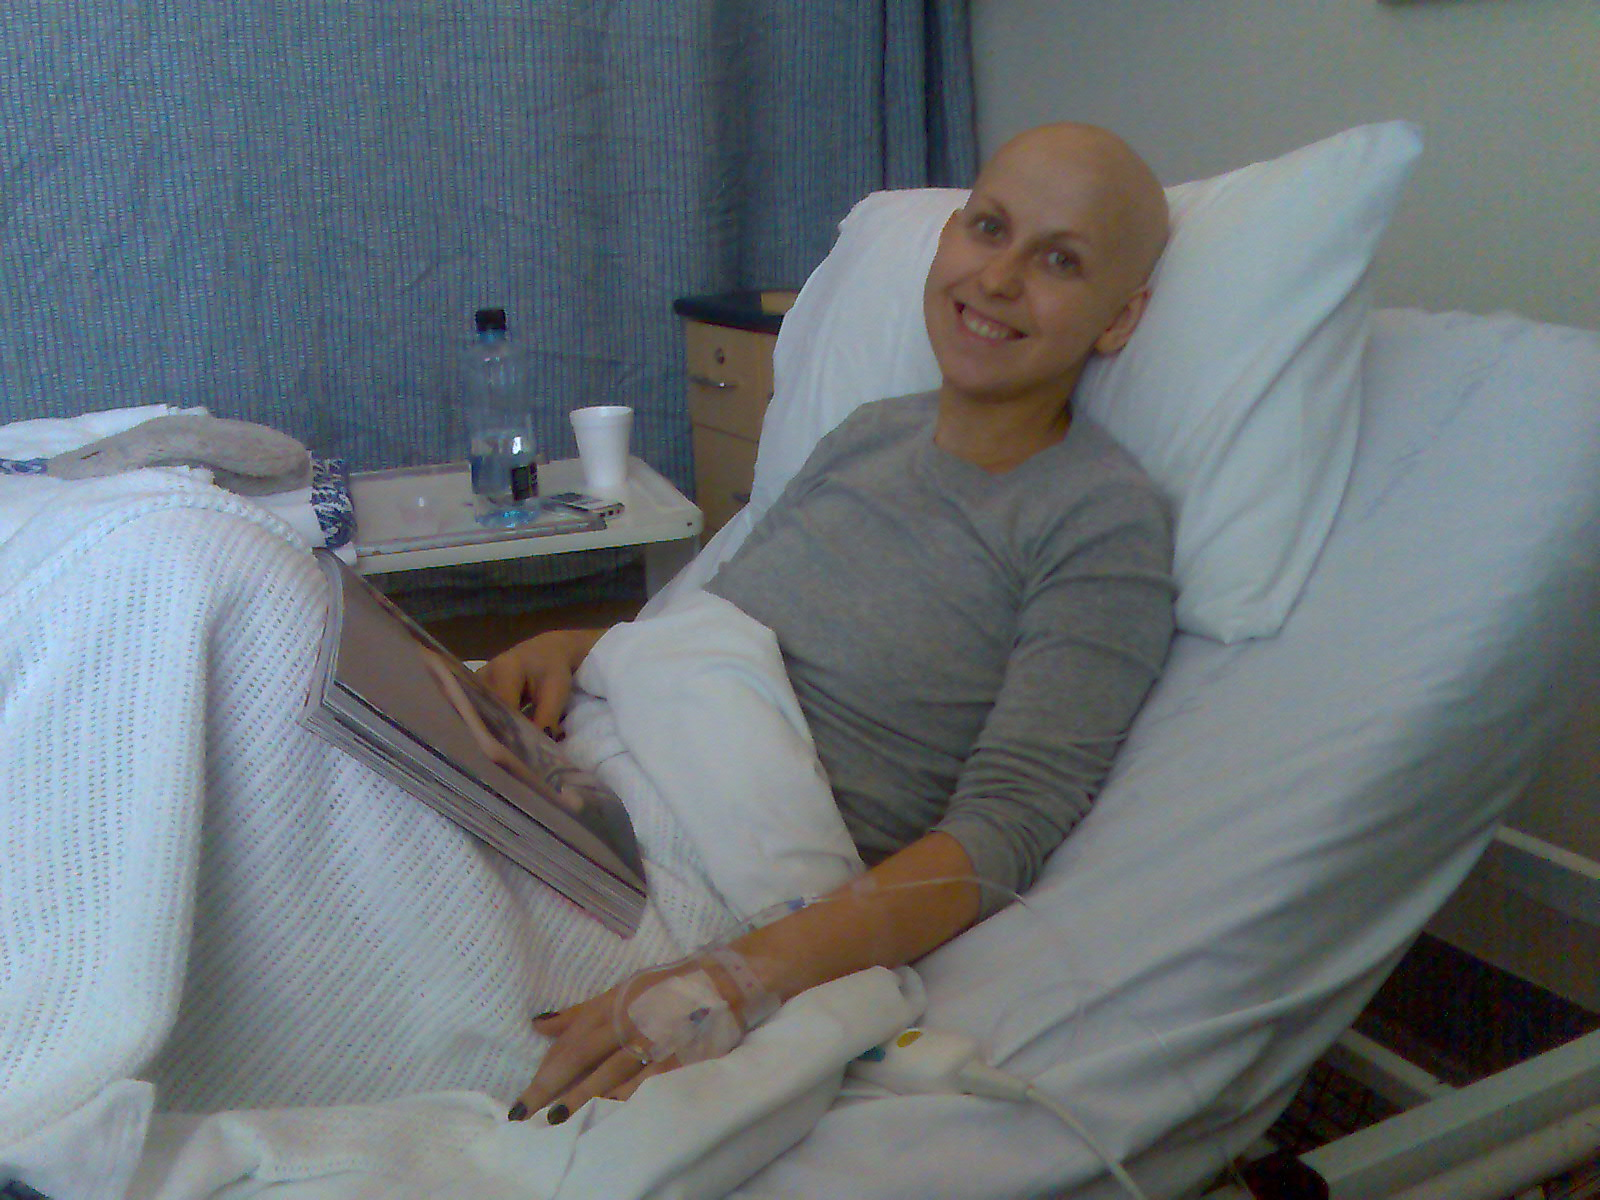 Cancer_patient.jpg?profile=RESIZE_710x